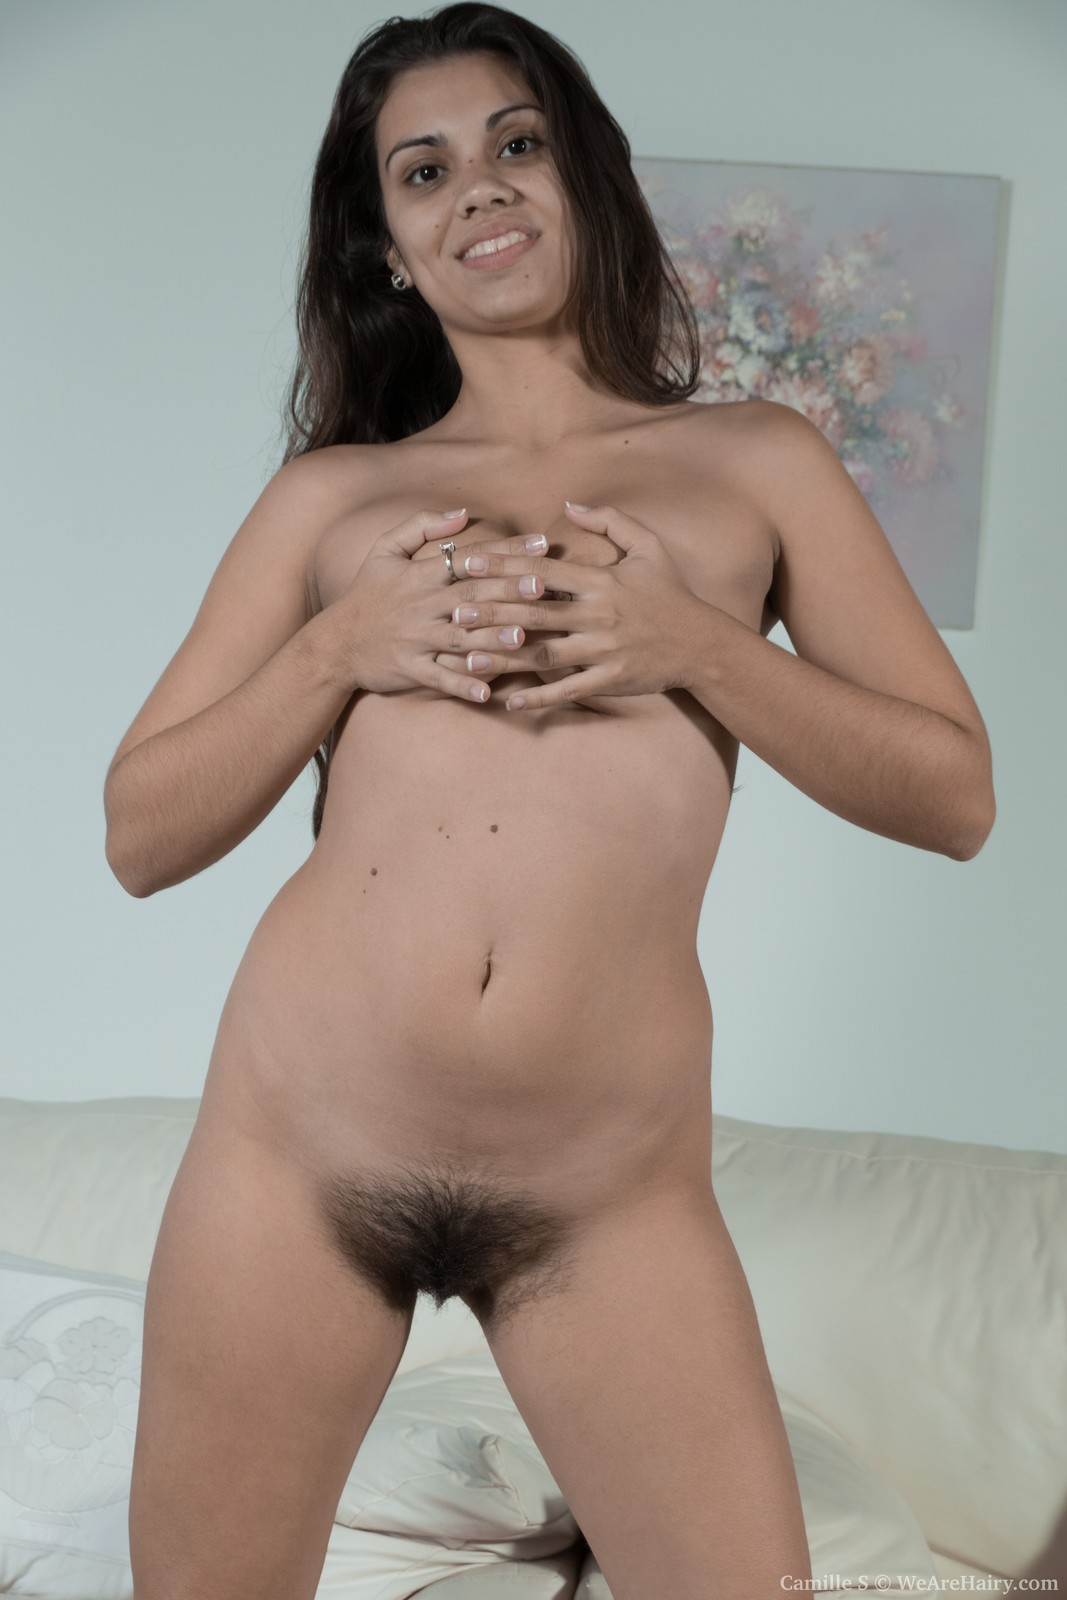 wpid-camille-s-strips-naked-on-her-white-couch7.jpg